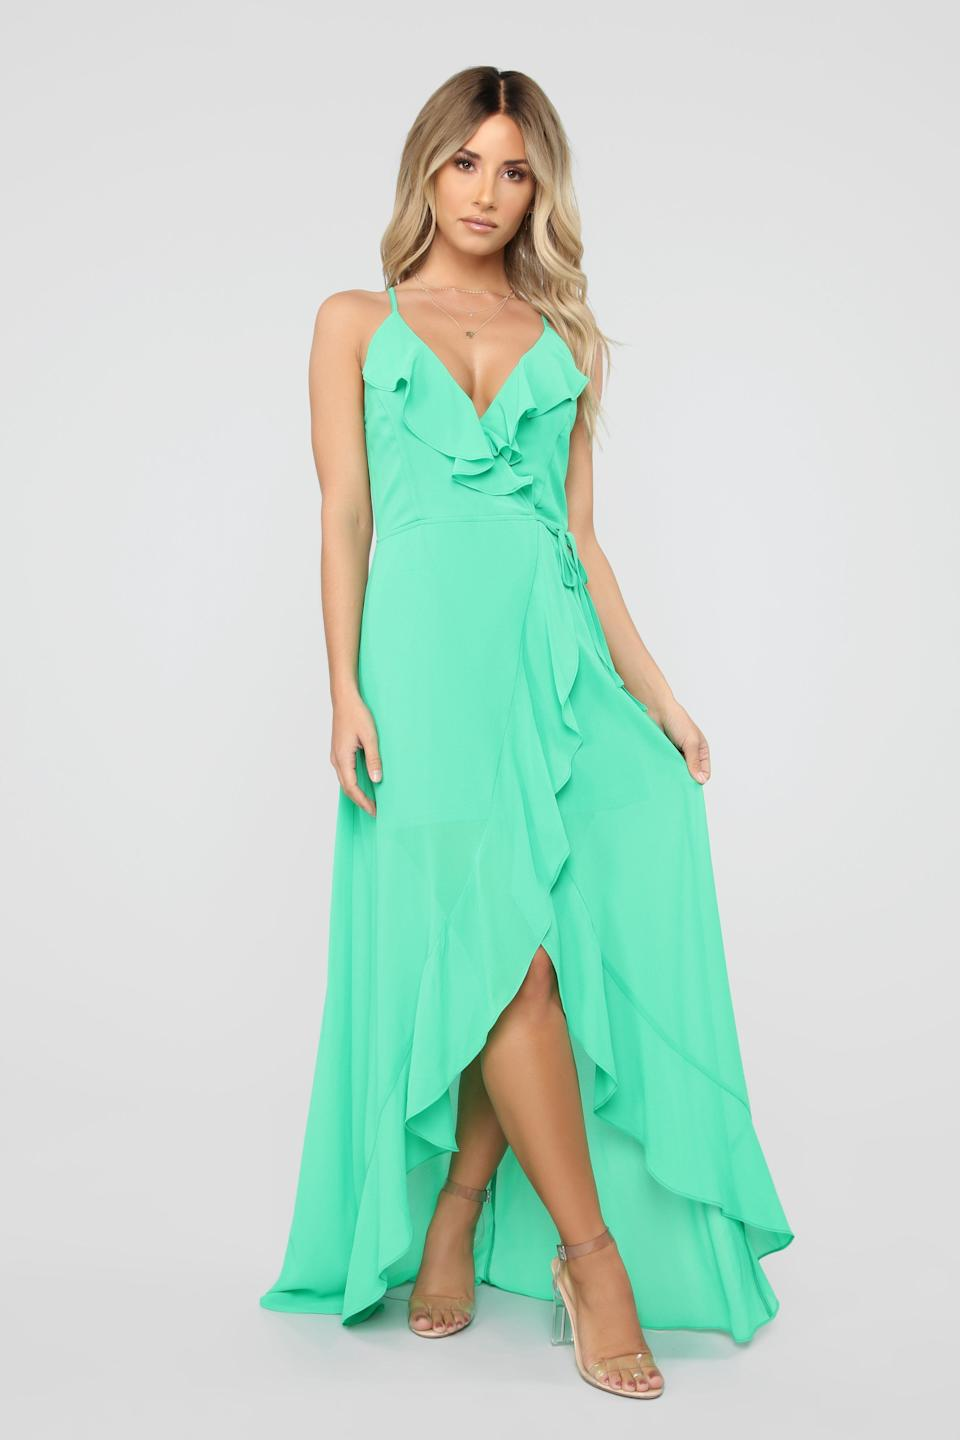 """<strong><a href=""""https://www.fashionnova.com/products/clear-my-schedule-chiffon-maxi-dress-hot-pink"""" target=""""_blank"""" rel=""""noopener noreferrer"""">Get the Fashion Nova chiffon maxi dress in green for $39.99.</a></strong>"""